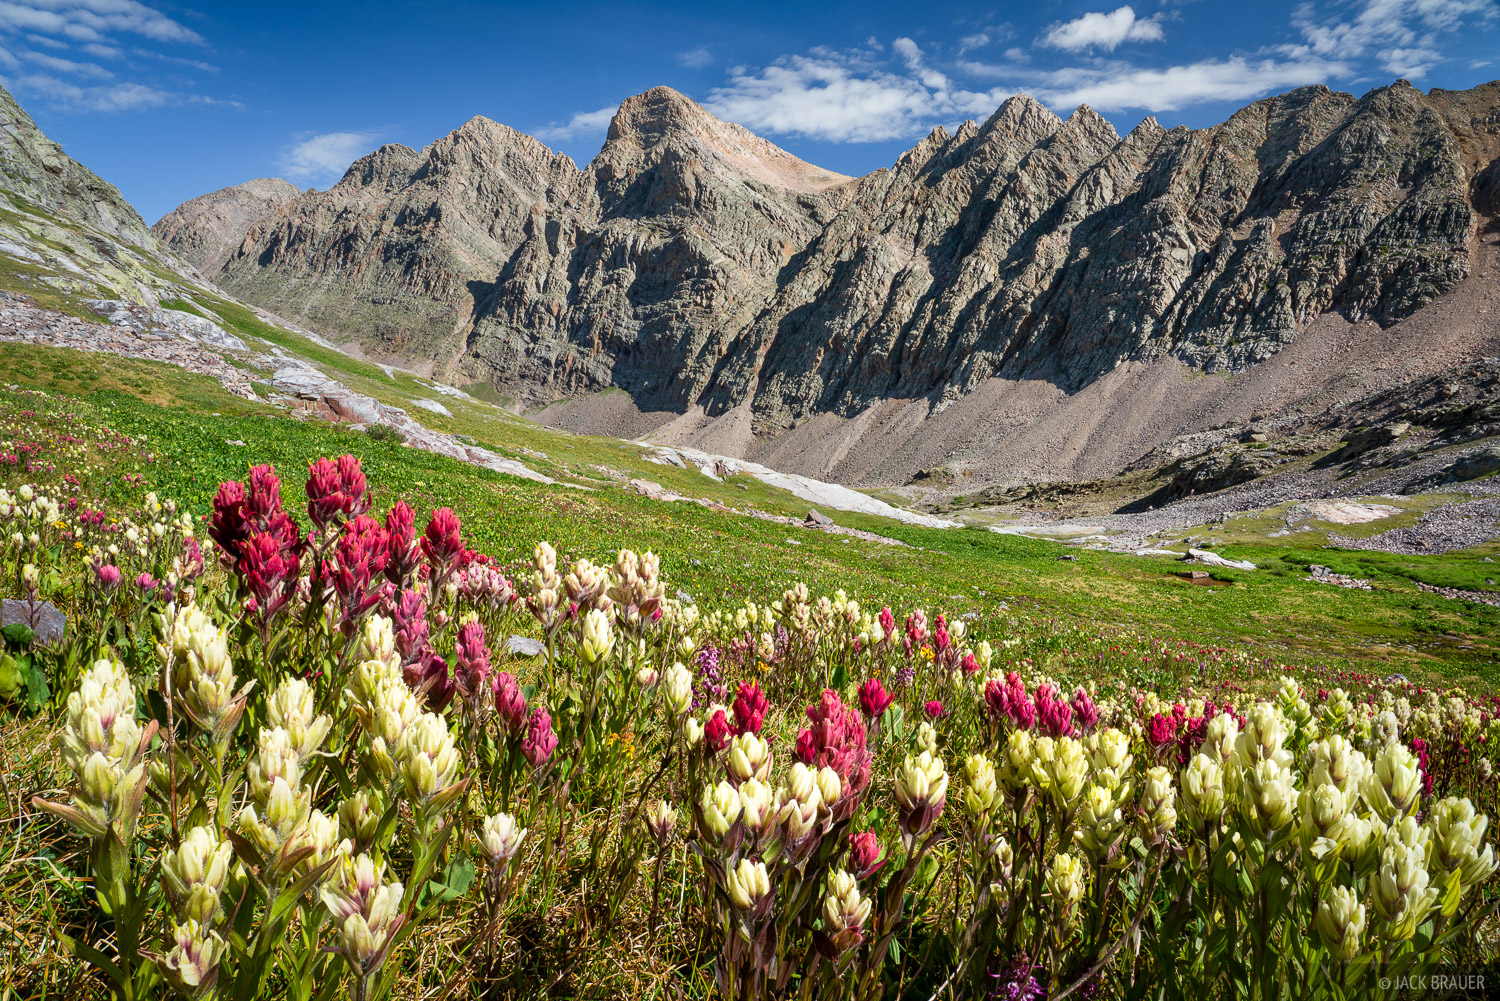 Colorado, Grenadier Range, San Juan Mountains, Trinity Peaks, Weminuche Wilderness, wildflowers, photo